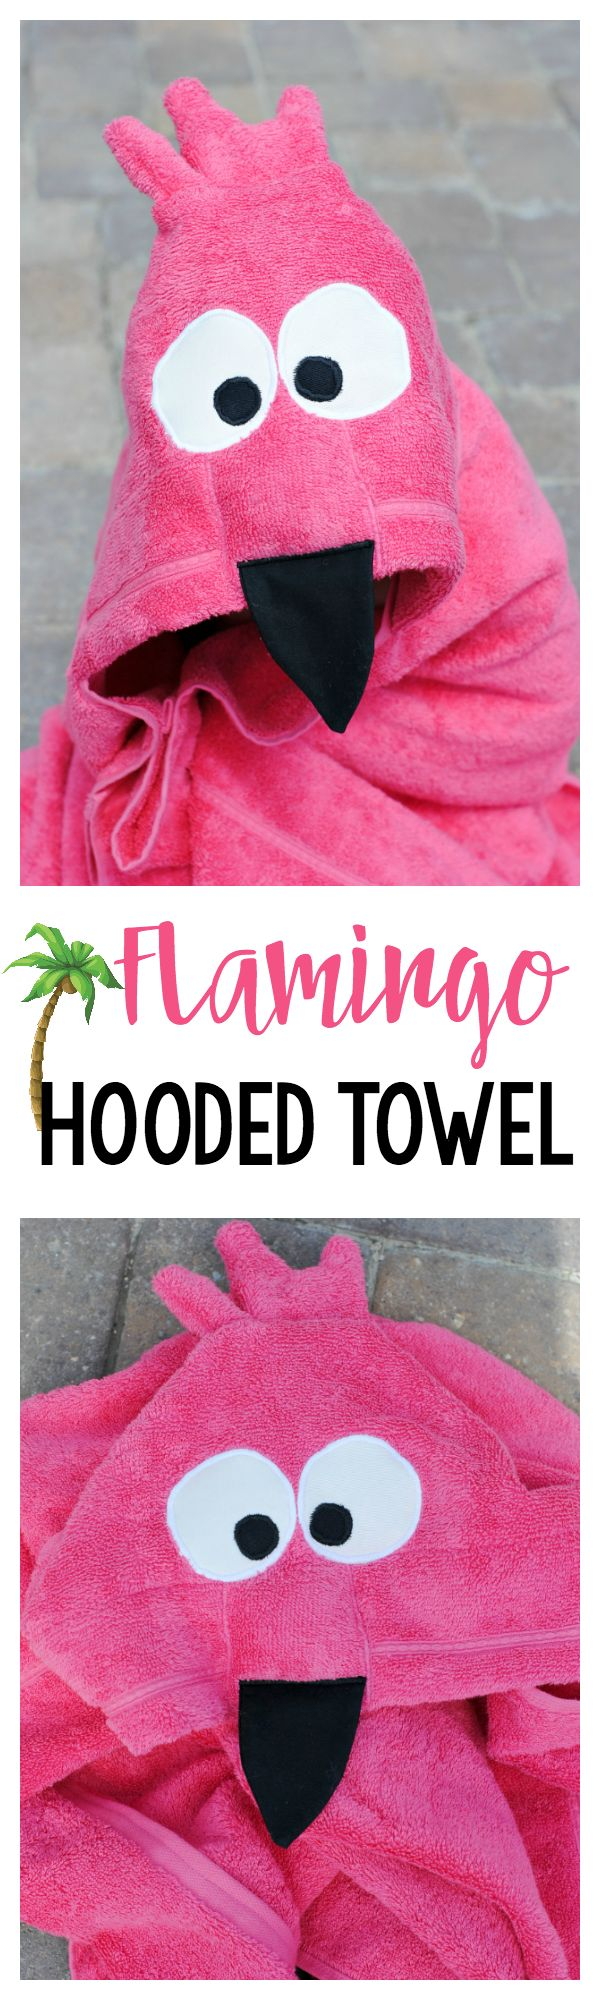 Flamingo Hooded Towel Pattern